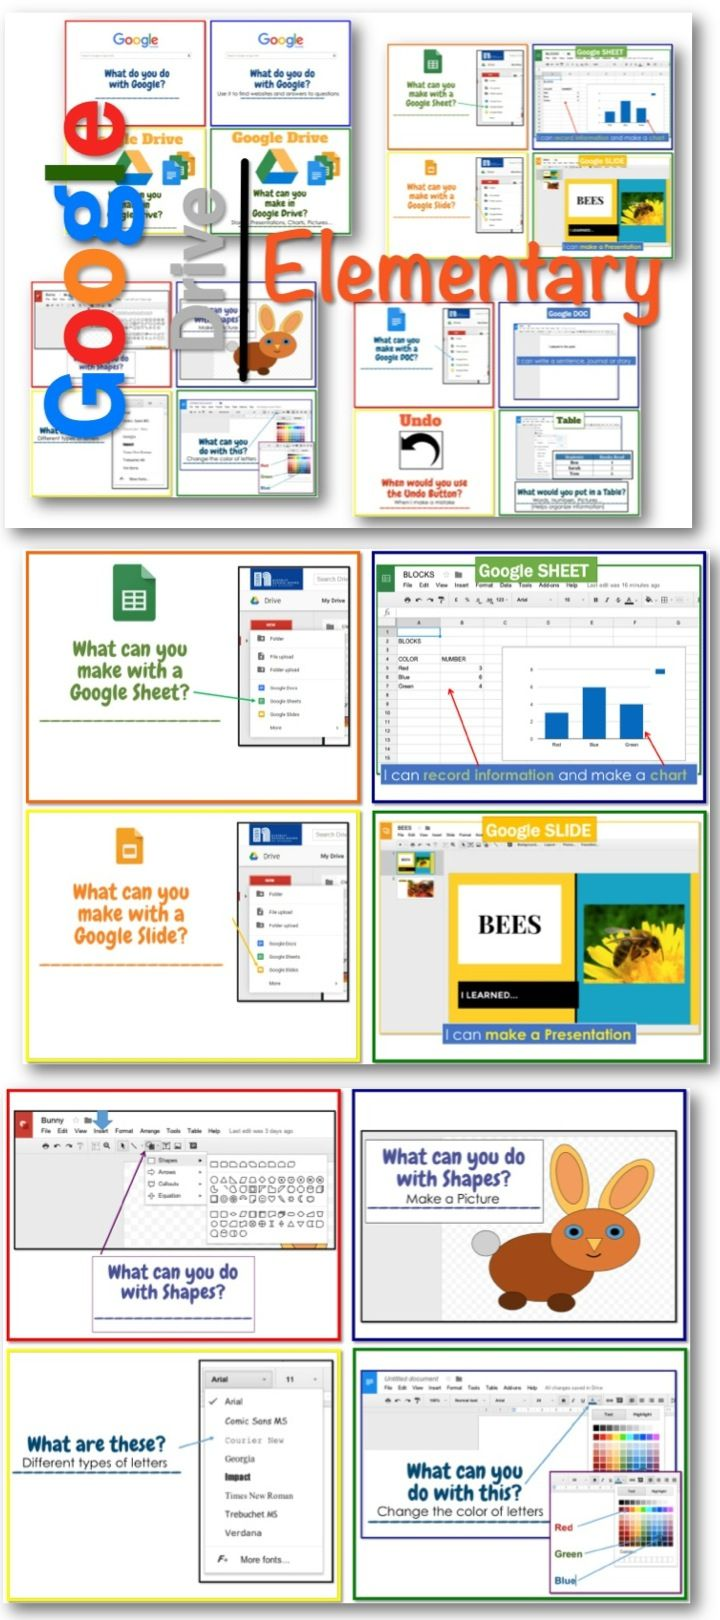 •	These program screen shots, pictures and questions are designed to spark a discussion or inquiry into what elementary students can do with Google Drive.  Show the Picture and Question, discuss as a class and then have students go to their computers to explore Google Drive